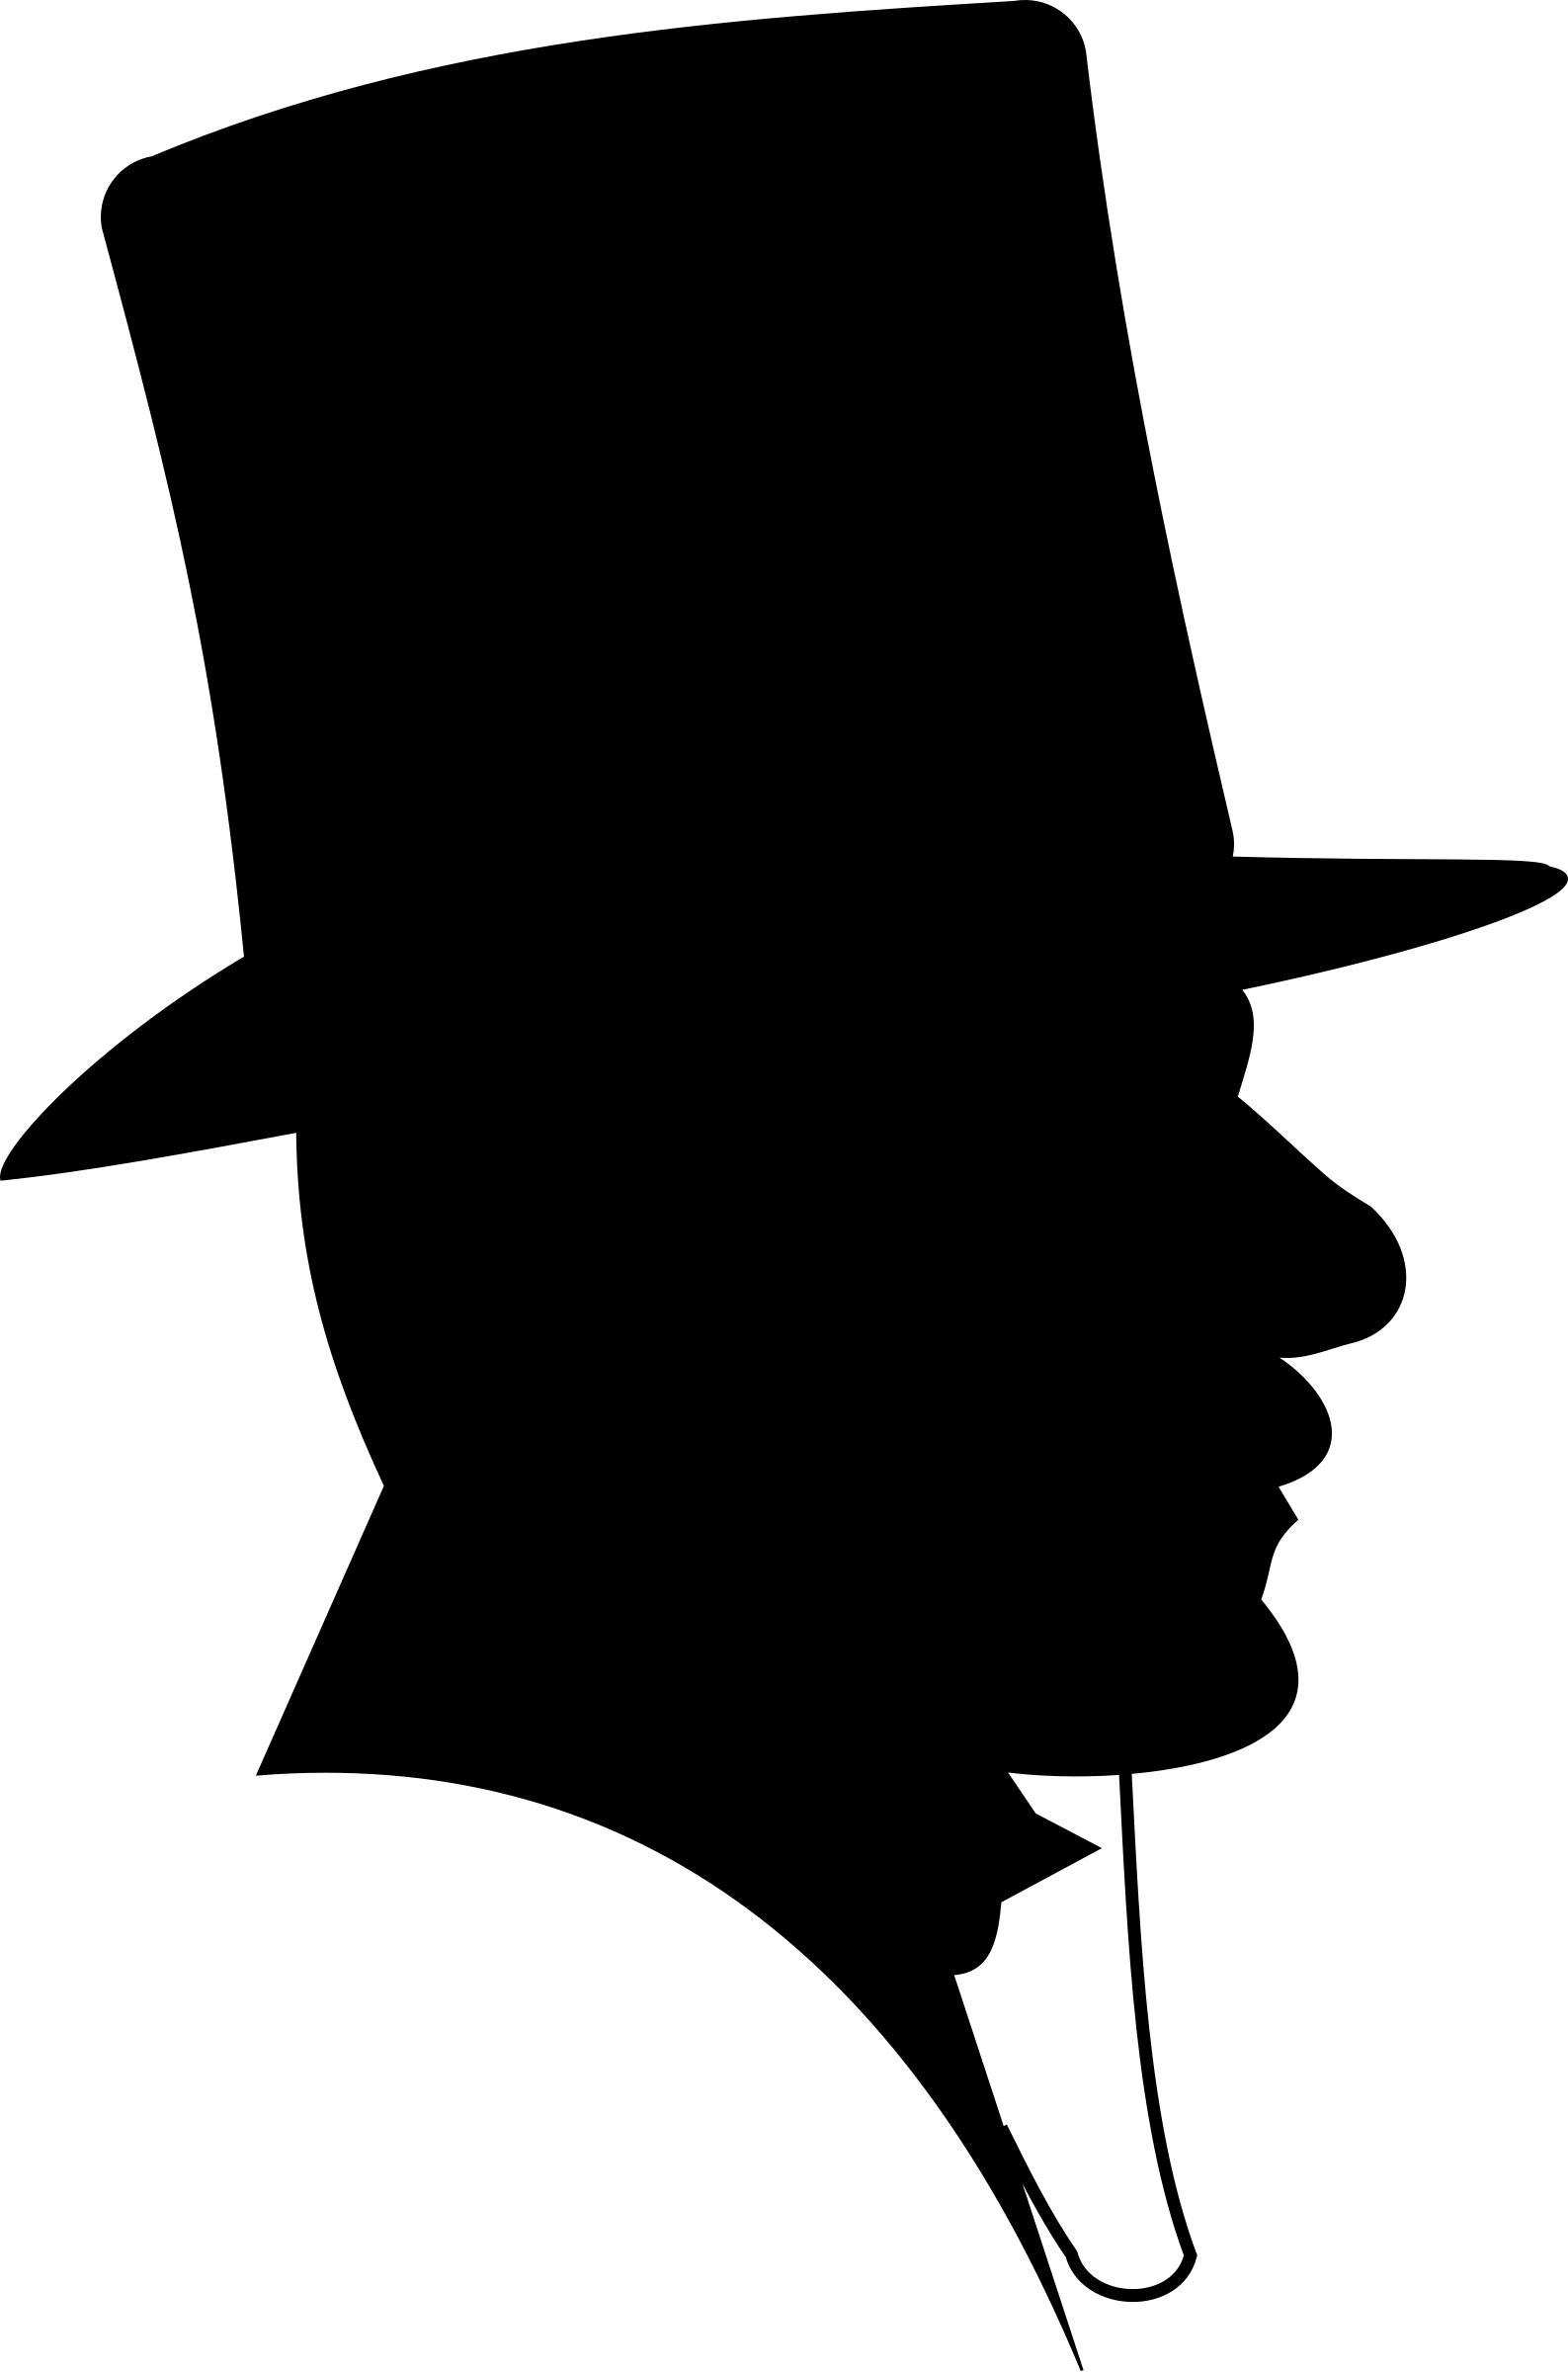 Top Hat Png Man - Victorian Man Silhouette Top Hat transparent PNG - StickPNG